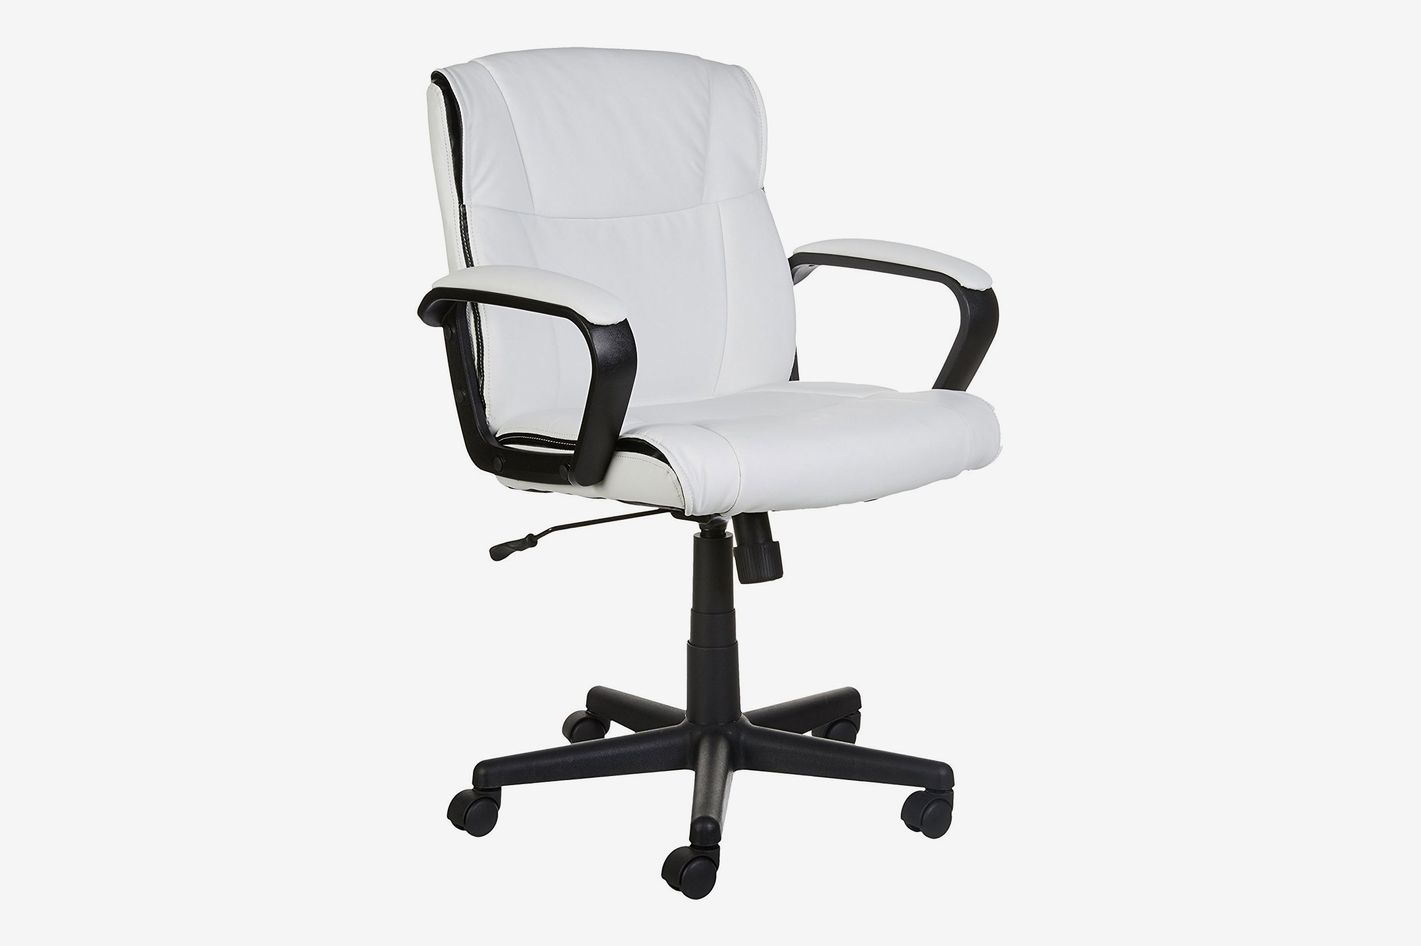 Office Chair Armrest AmazonBasics Mid-Back Office Chair, White at Amazon